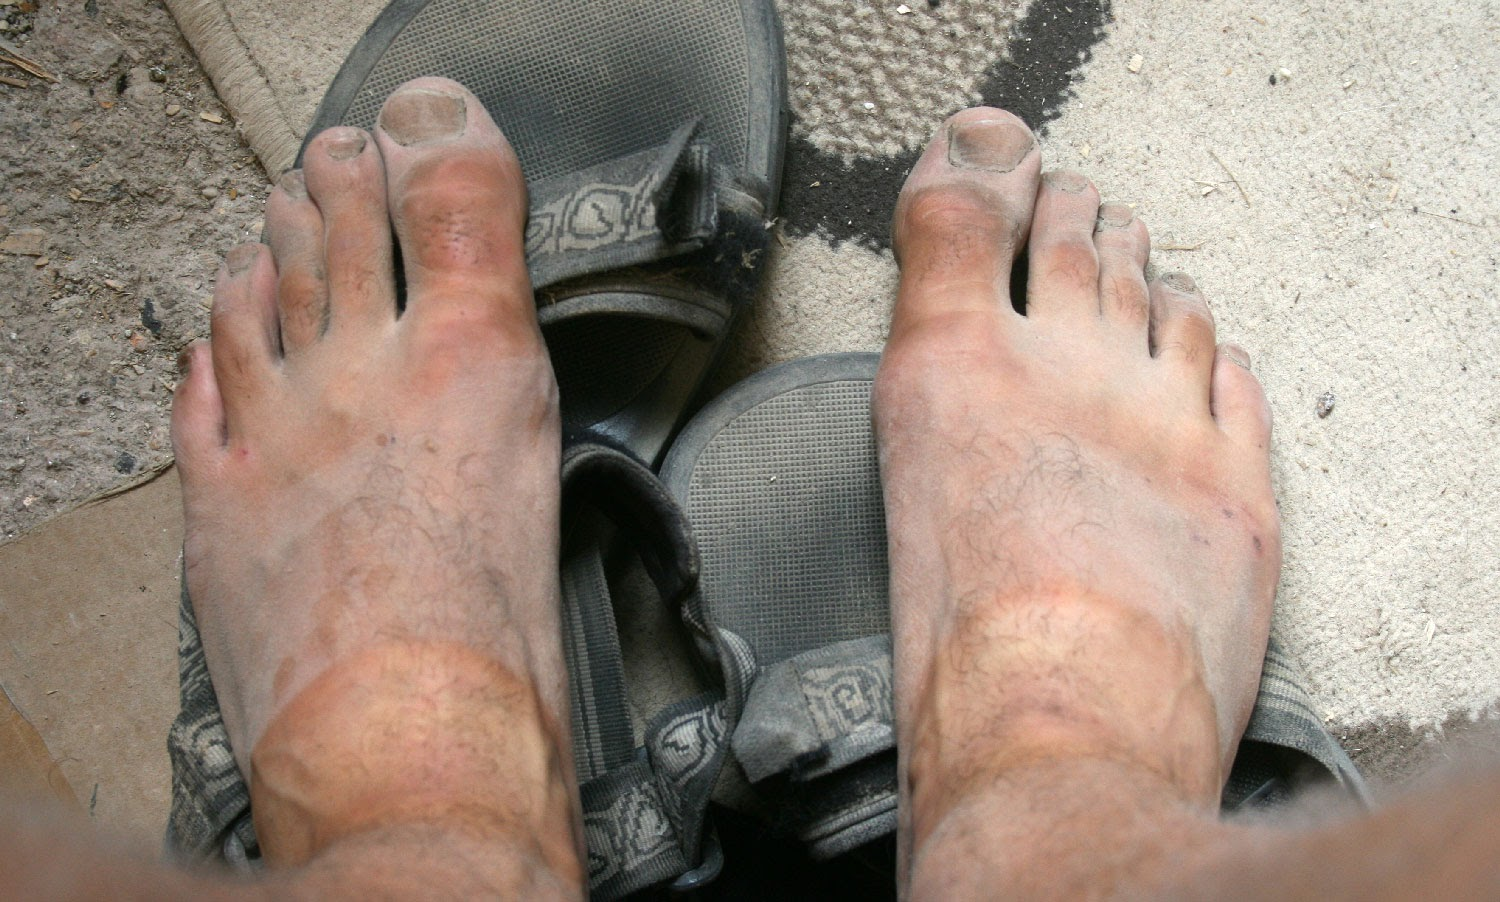 Super dusty feet